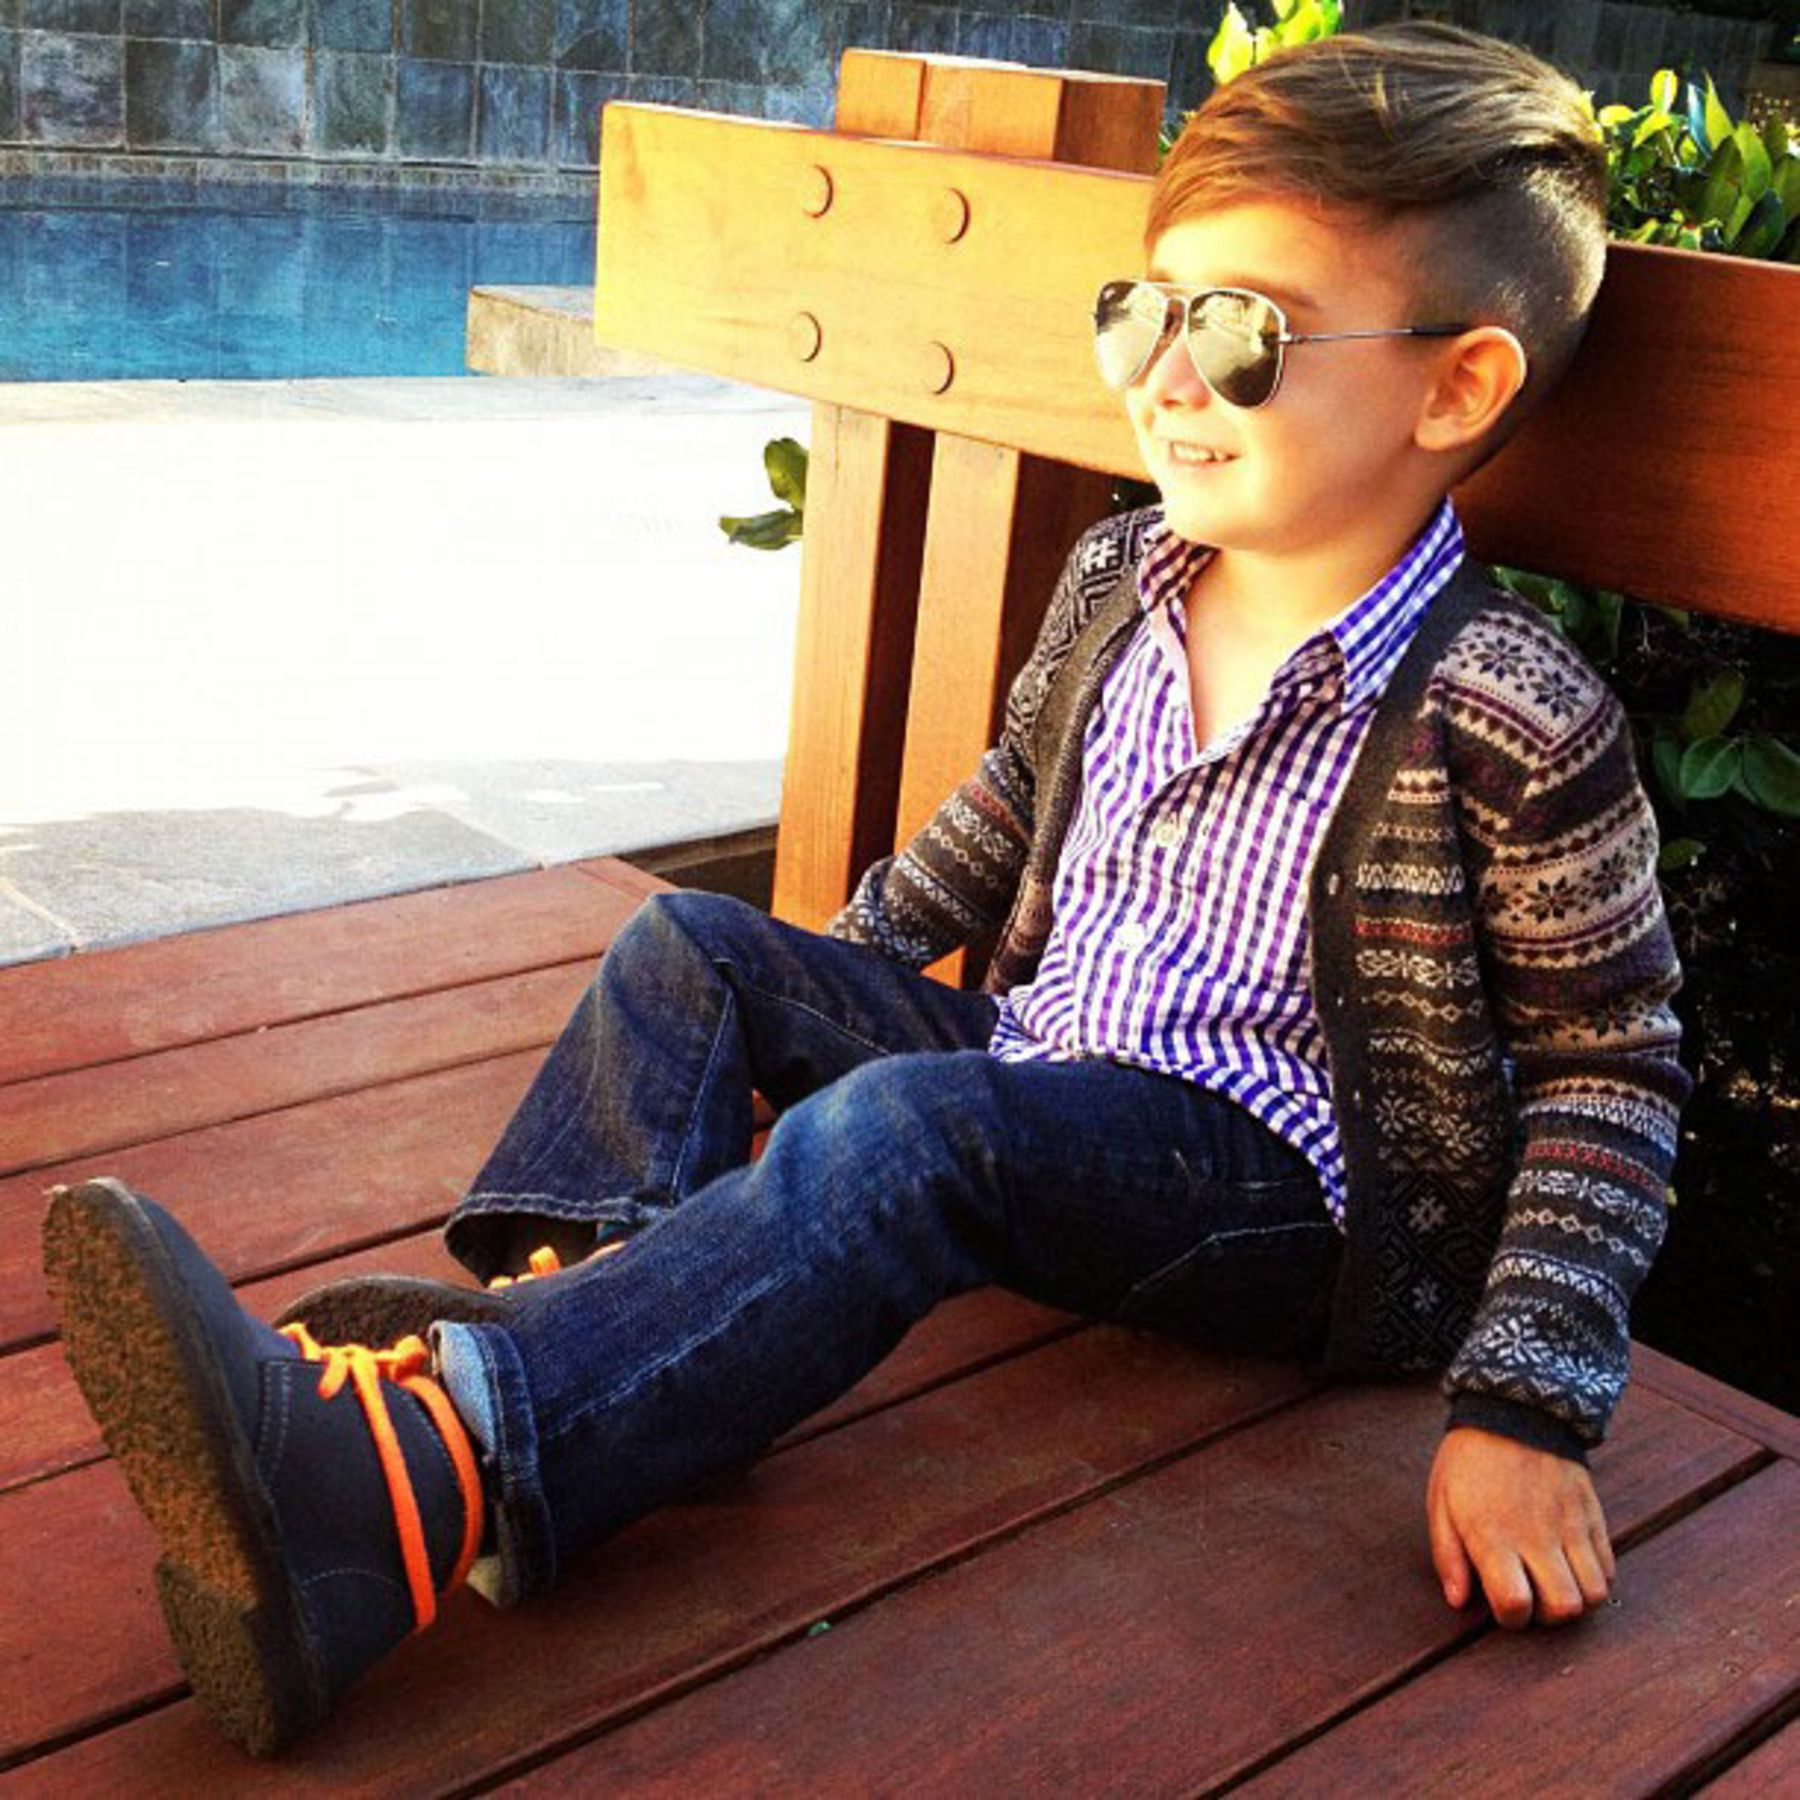 The YearOld Boy Whos Become An Instagram Style Icon Alonso Mateo - Meet 5 year old alonso mateo best dressed kid ever seen